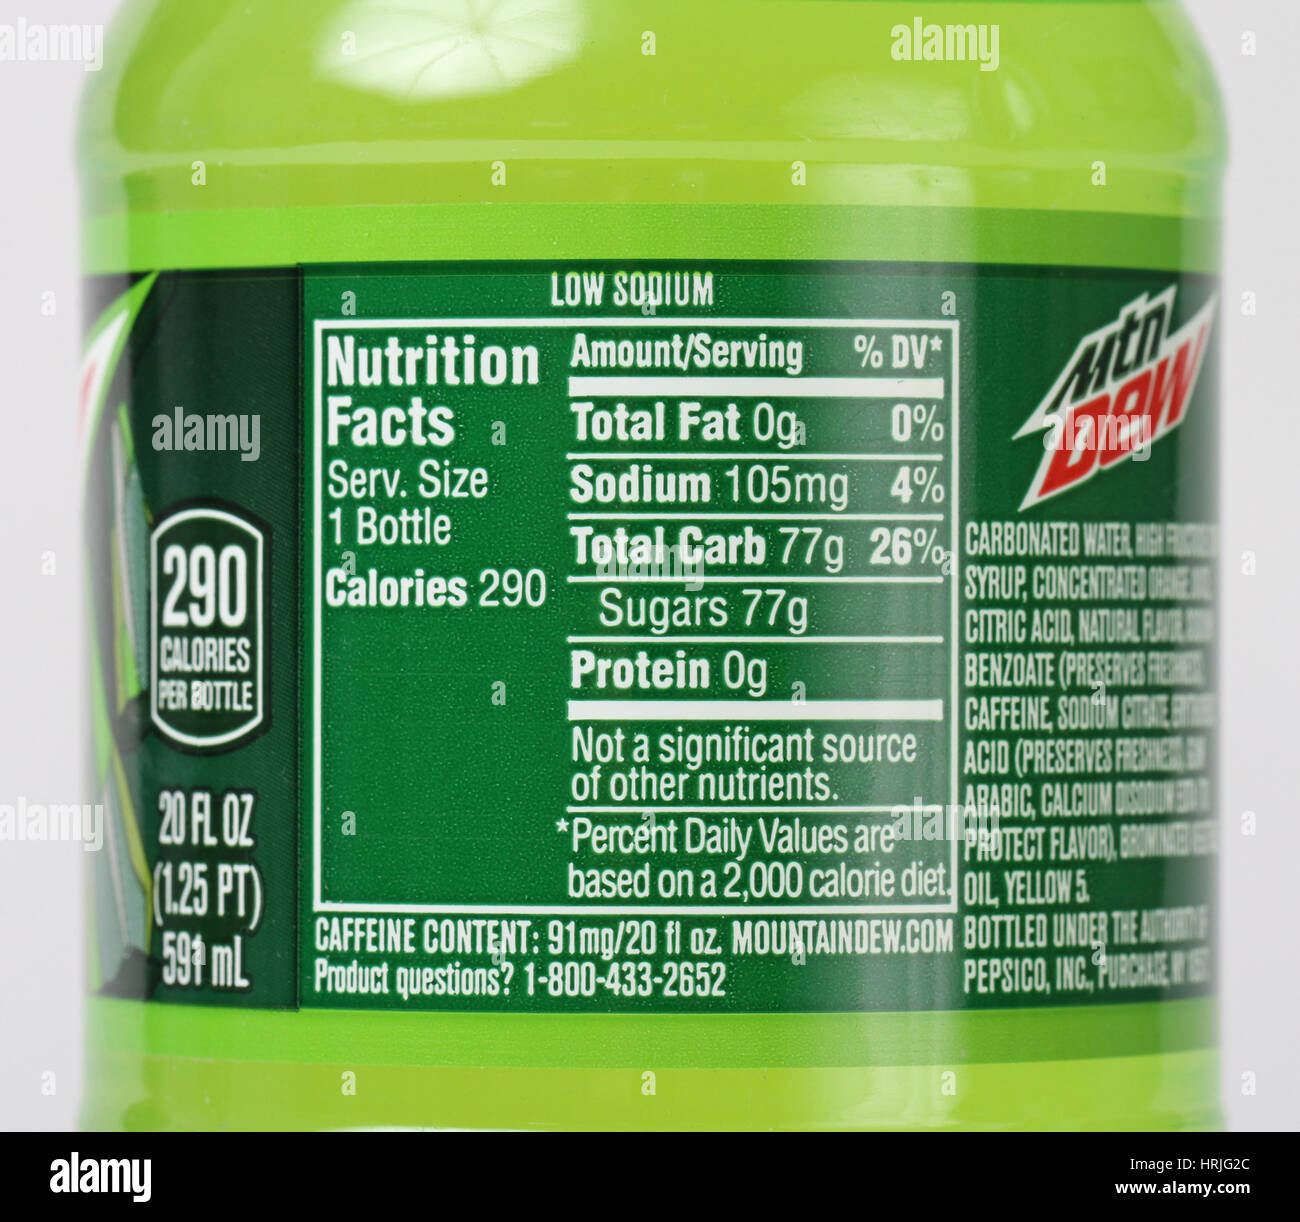 nutrition-facts-for-soda-pop-soft-drink-HRJG2C.jpg